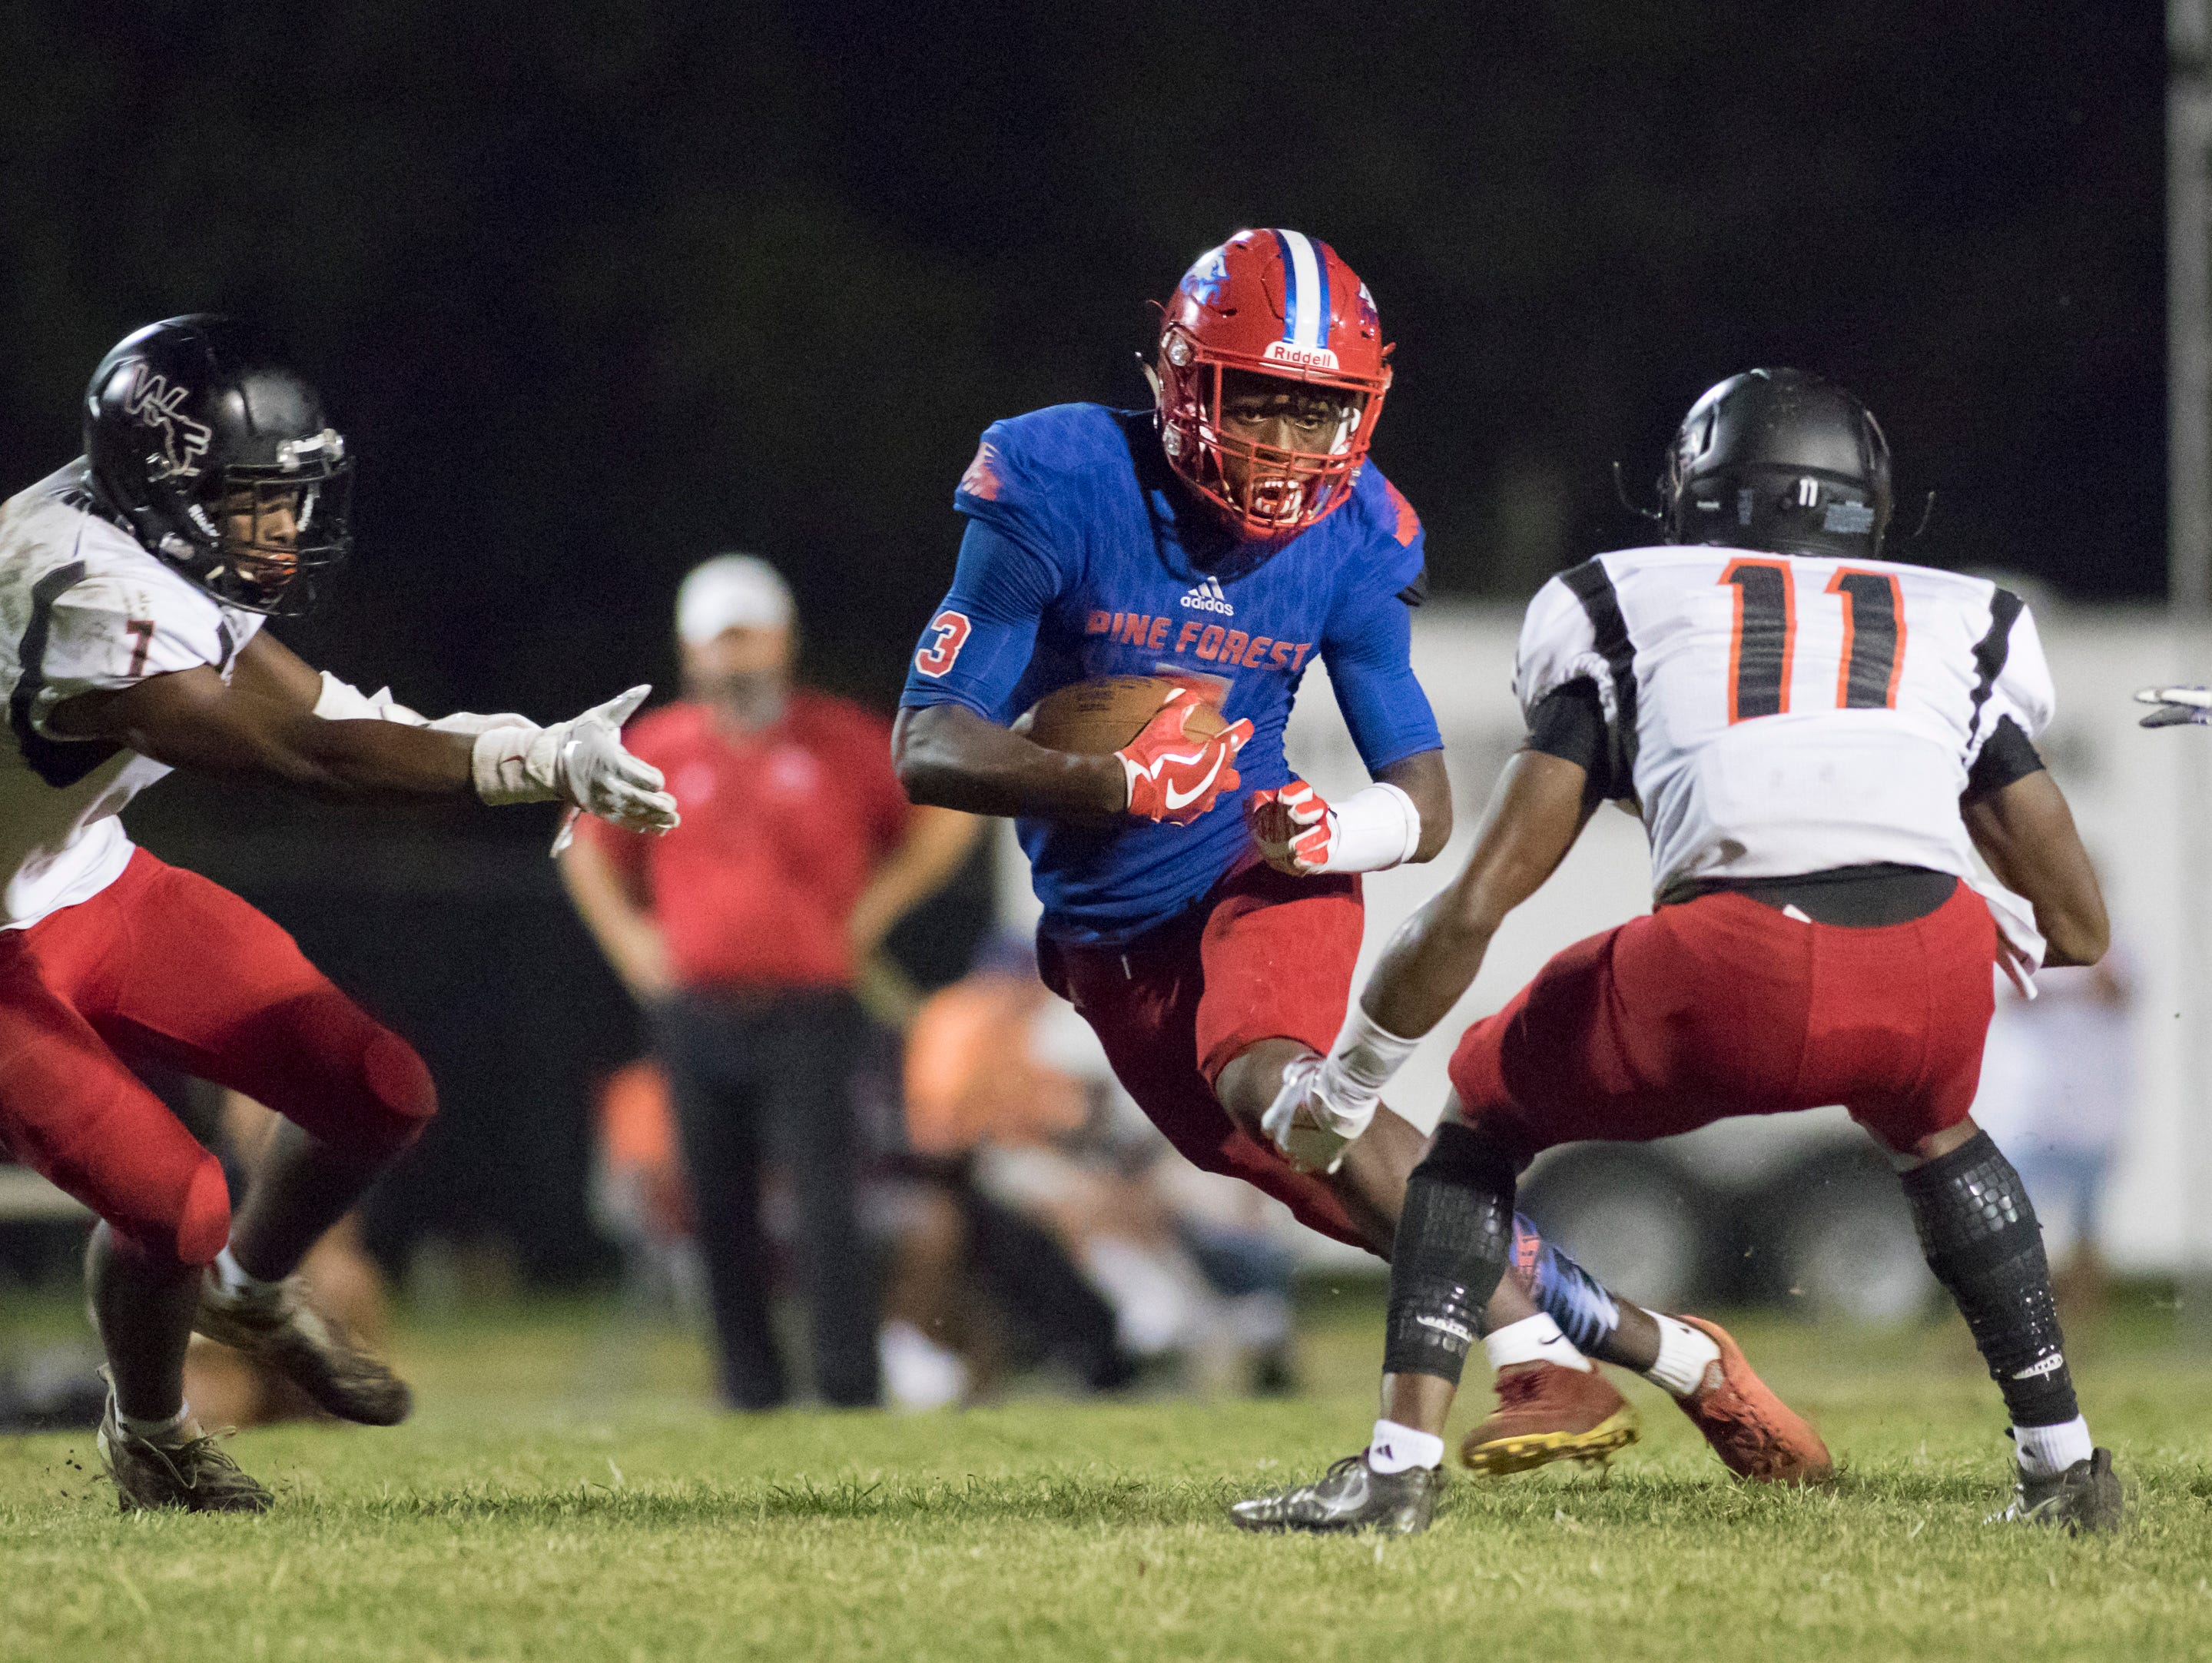 Tehrenzo Turner (7) carries the ball during the West Florida vs Pine Forest football game at Pine Forest High School in Pensacola on Friday, October 5, 2018.